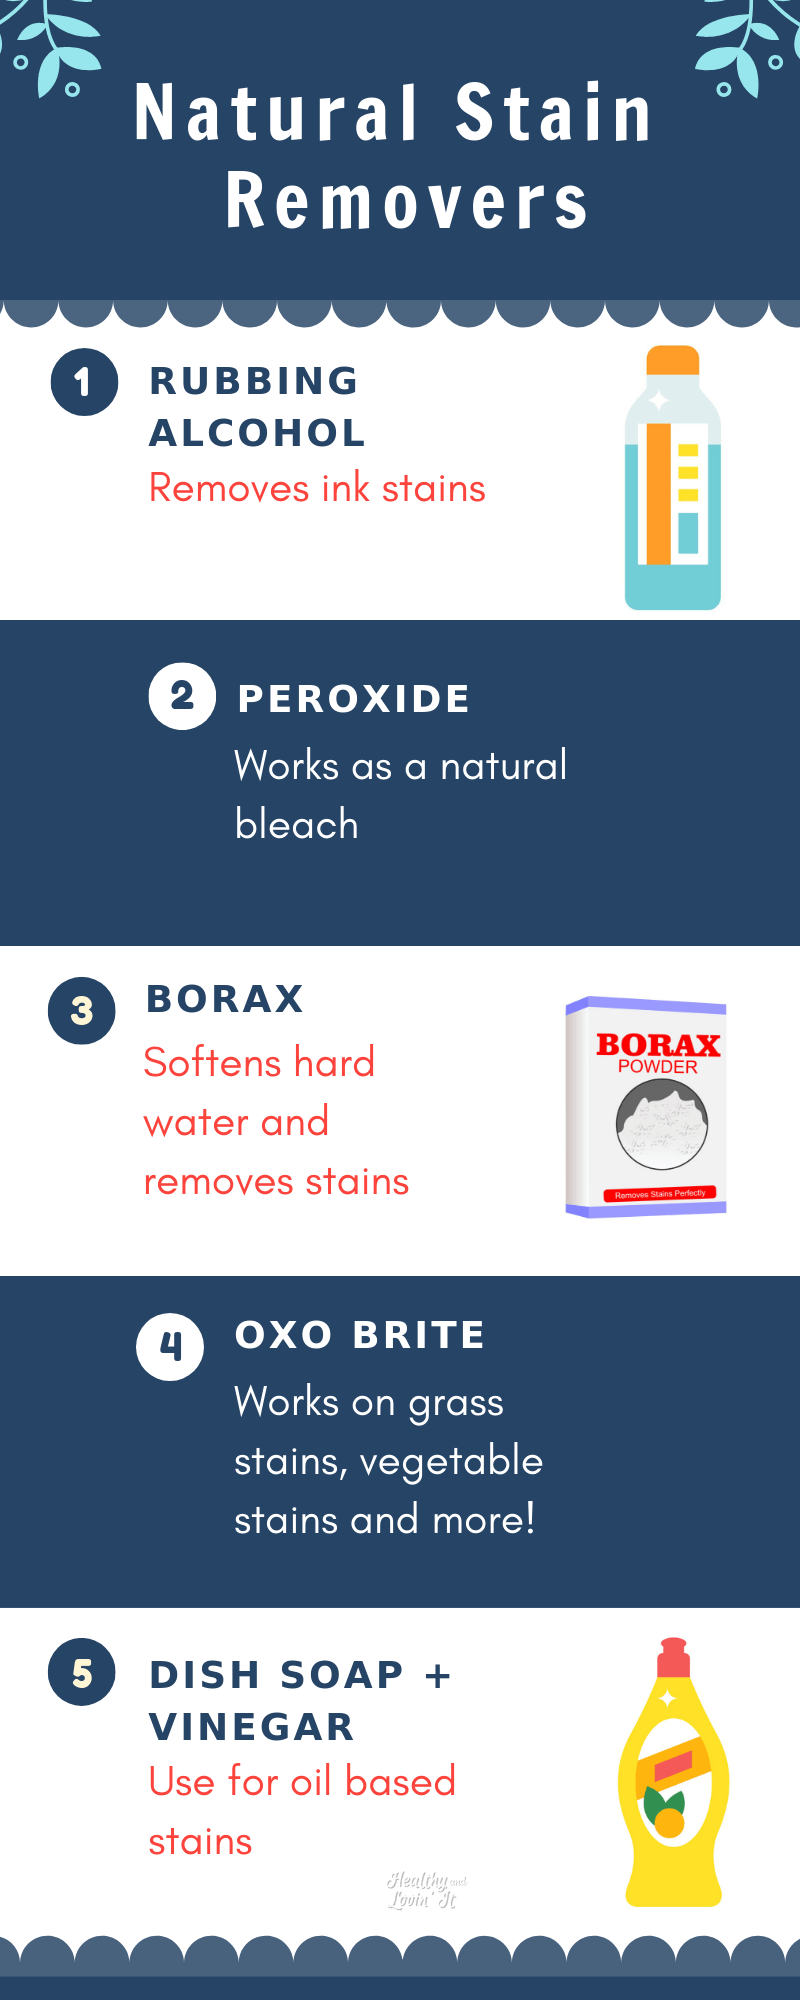 Here are my favorite natural stain removers for laundry. Whether I am dealing with an oil stain, ink stain, or blood stain I have something that will work. Some of the stain removers are perfect for whites and others will work for any color! #HealthyandLovinIt #laundry #stainremover #clothes #diy